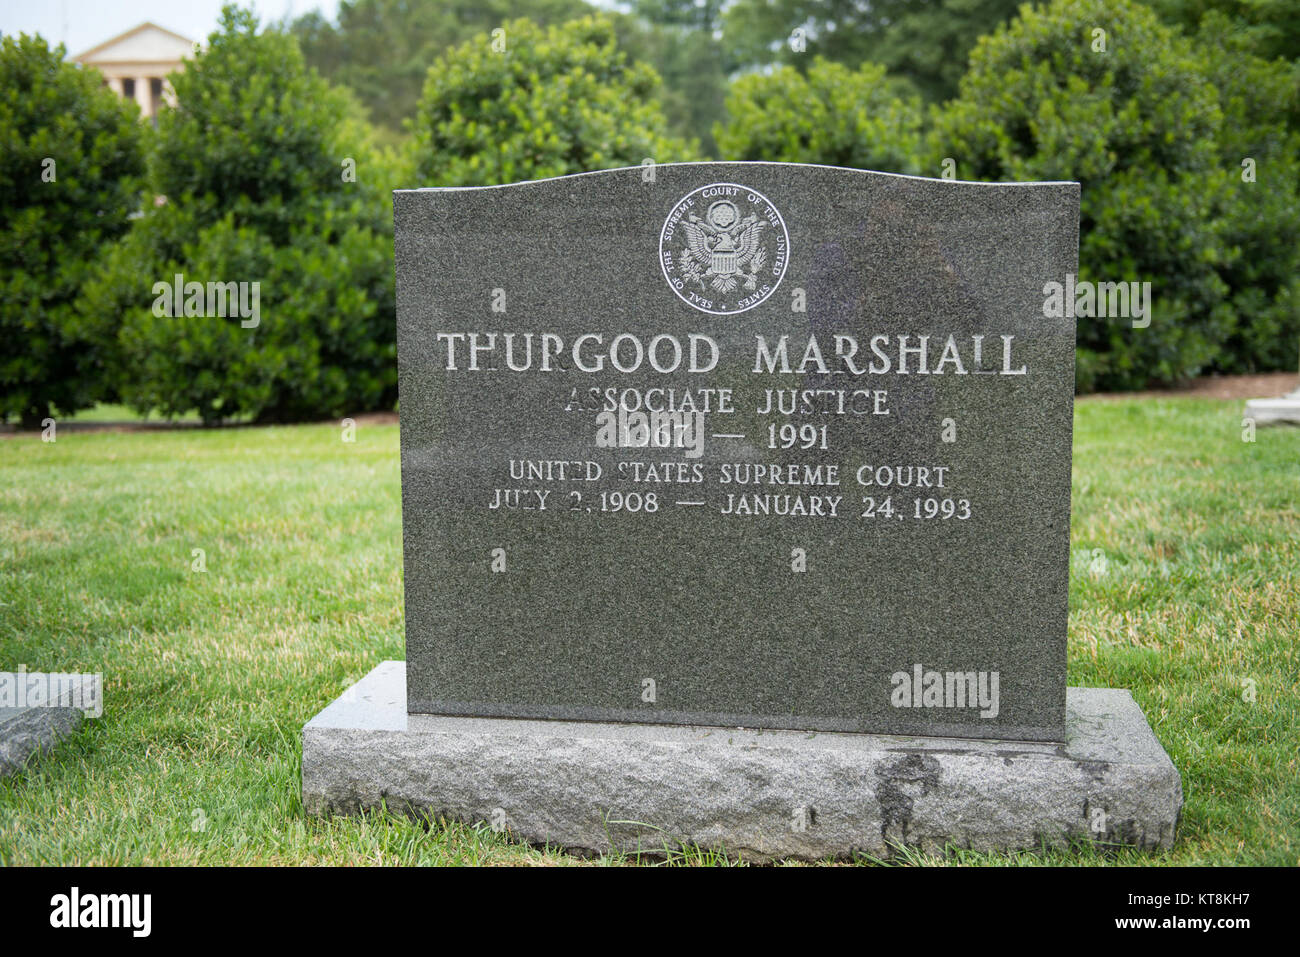 Justice Thurgood Marshall, Section 5, Grave 40-3, was appointed to the Supreme Court in 1967 by President Lyndon - Stock Image